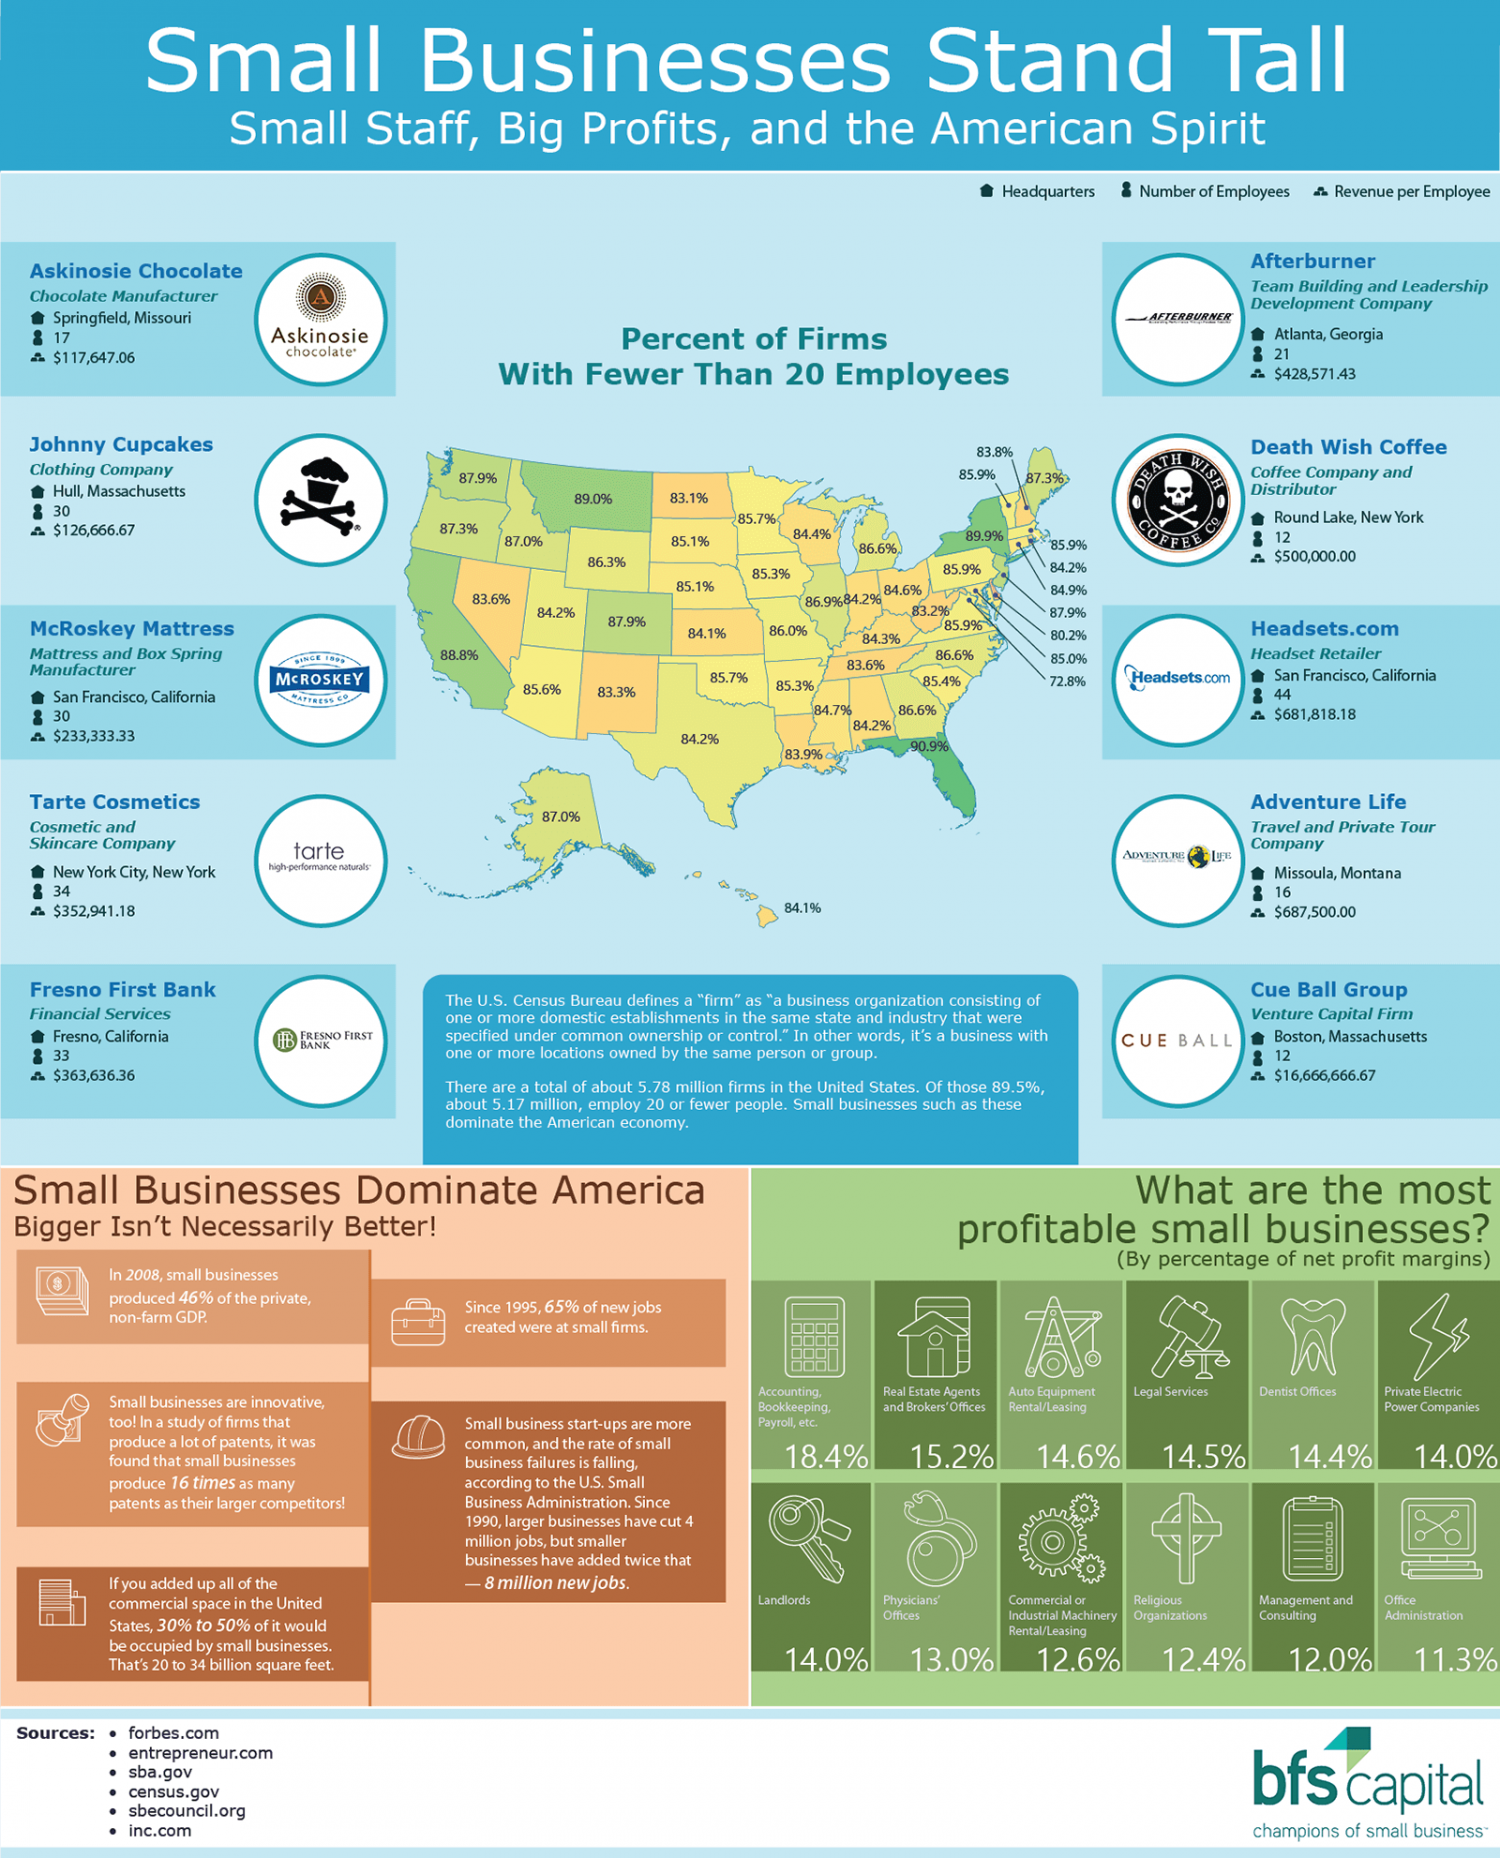 Small Businesses Stand Tall: Small Staff, Big Profits, and the American Spirit Infographic